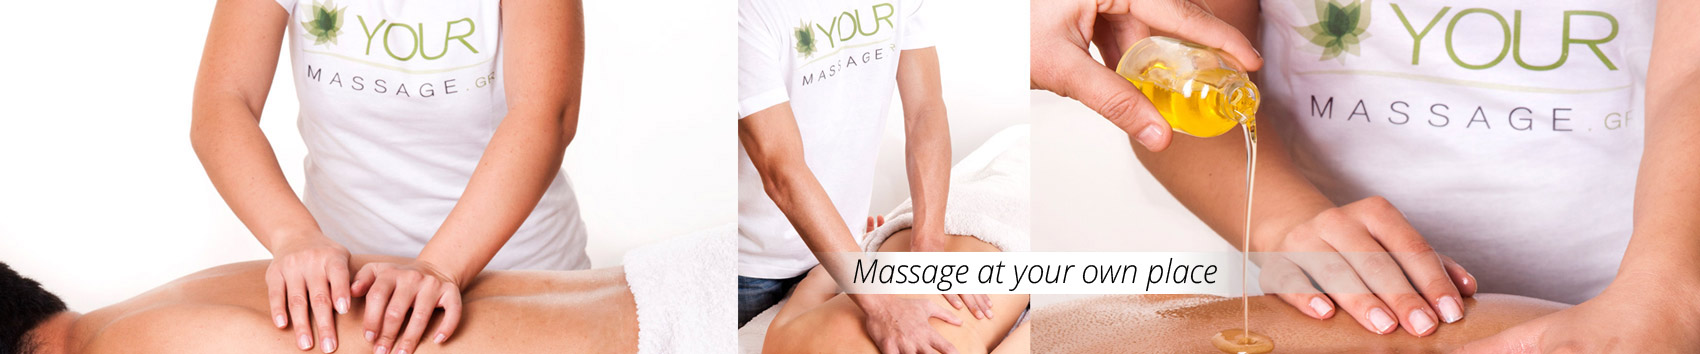 massage at your own place